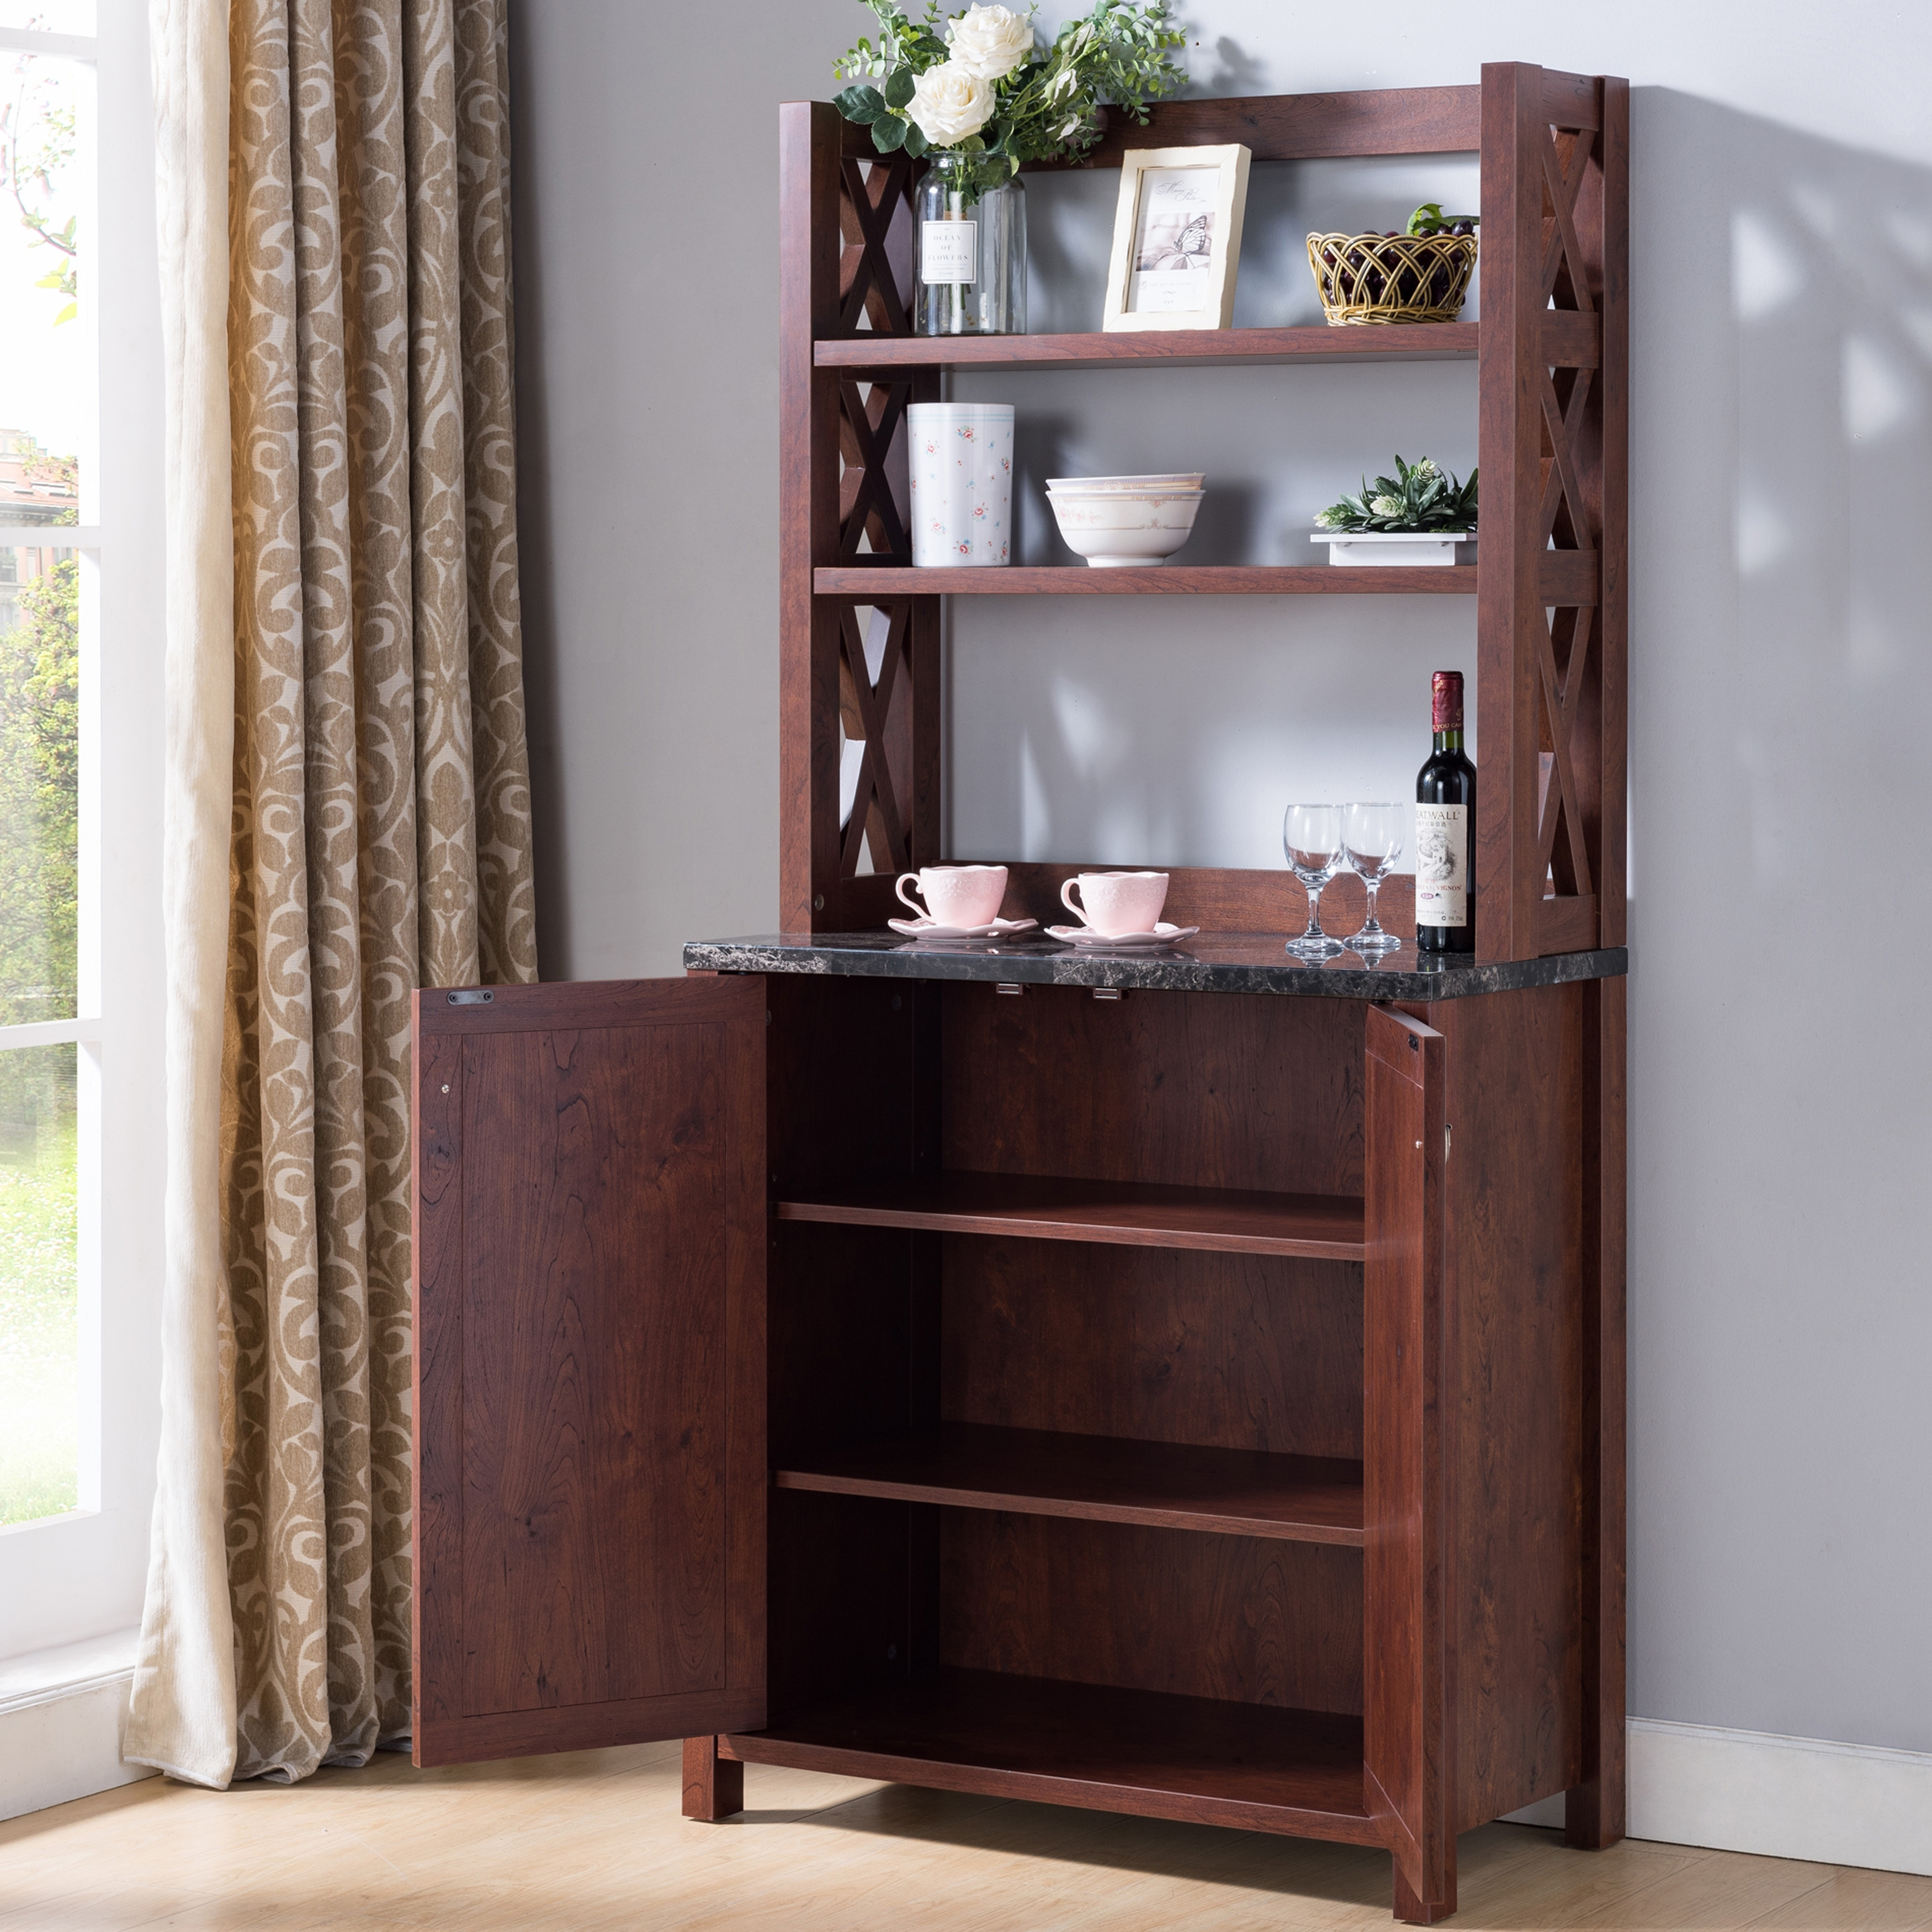 Picture of: Furniture Of America Yeer Rustic Walnut Kitchen Storage Hutch On Sale Overstock 25453143